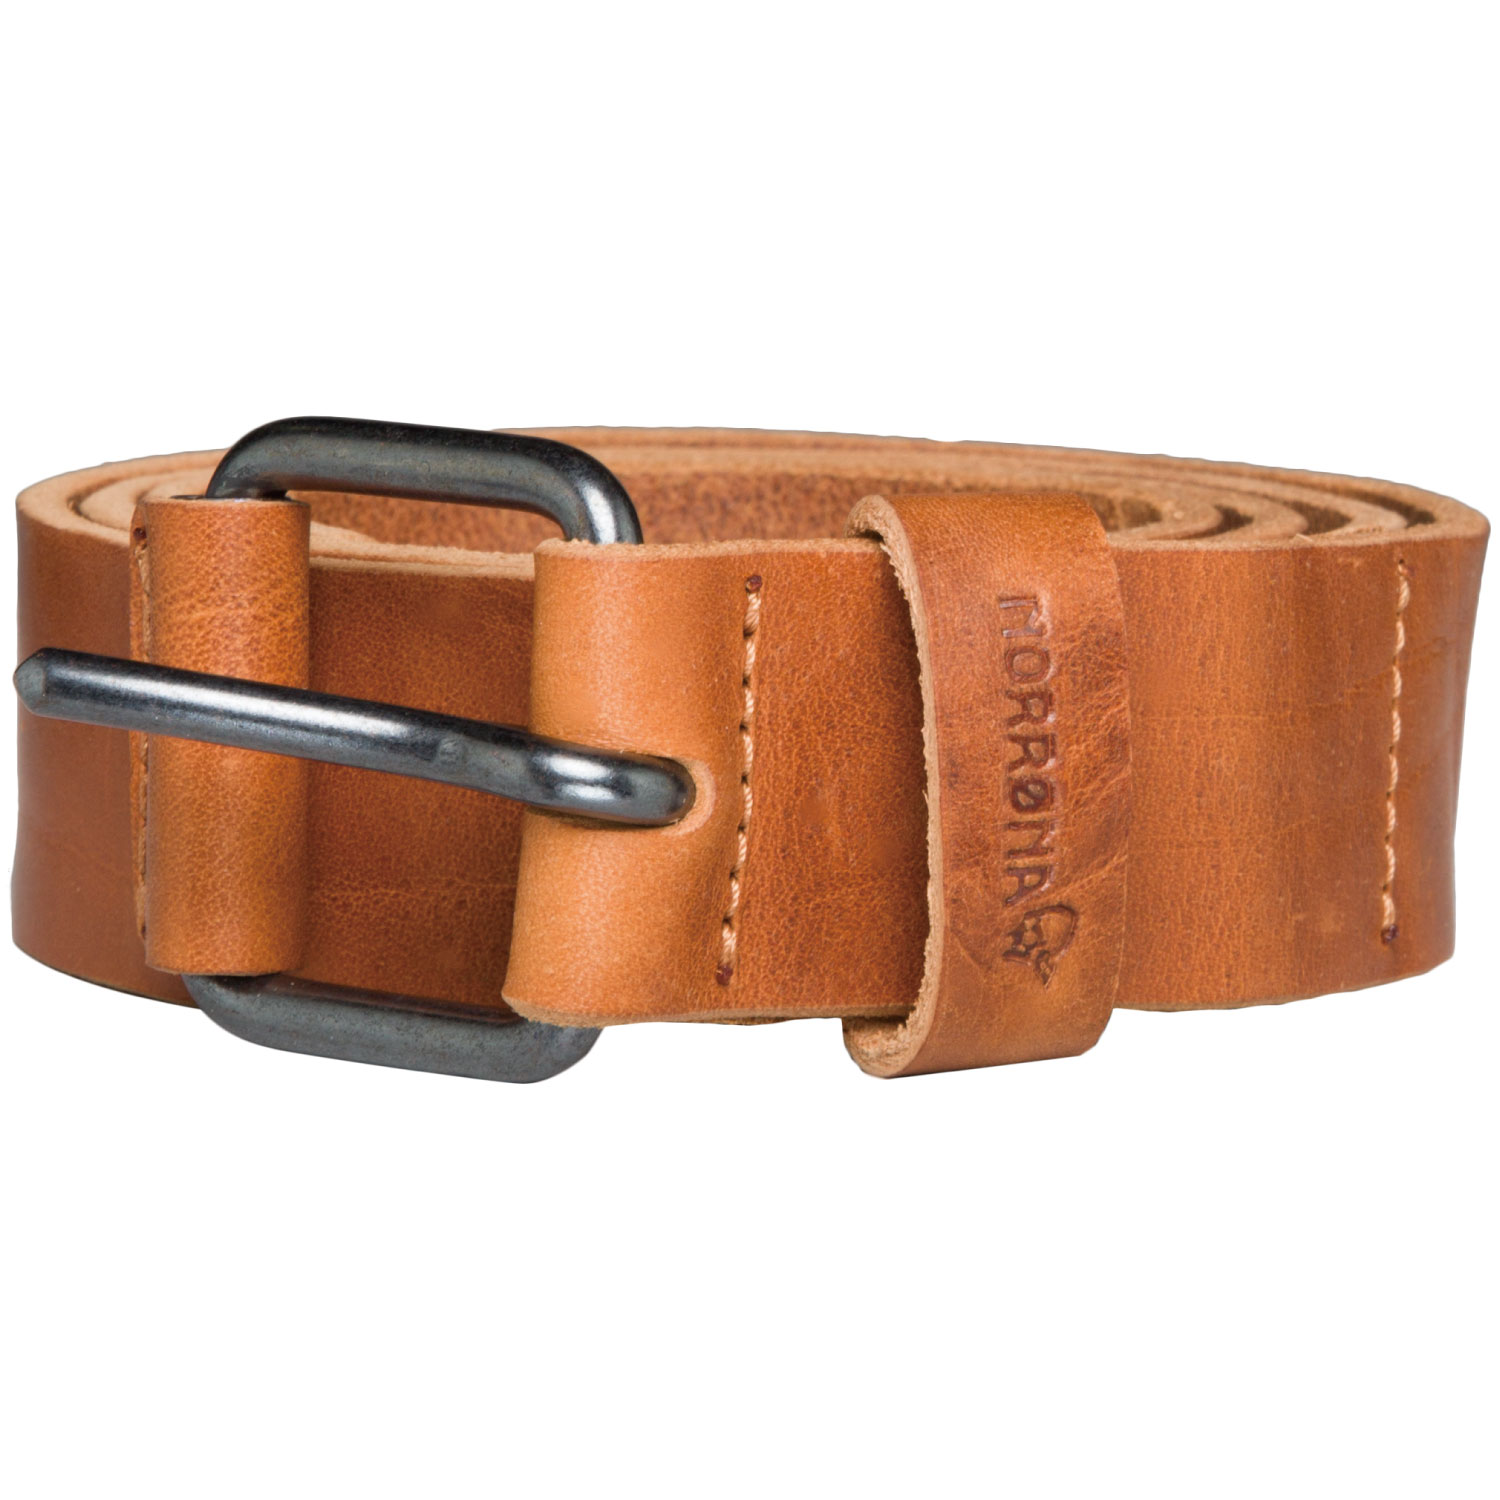 /29 leather Belt